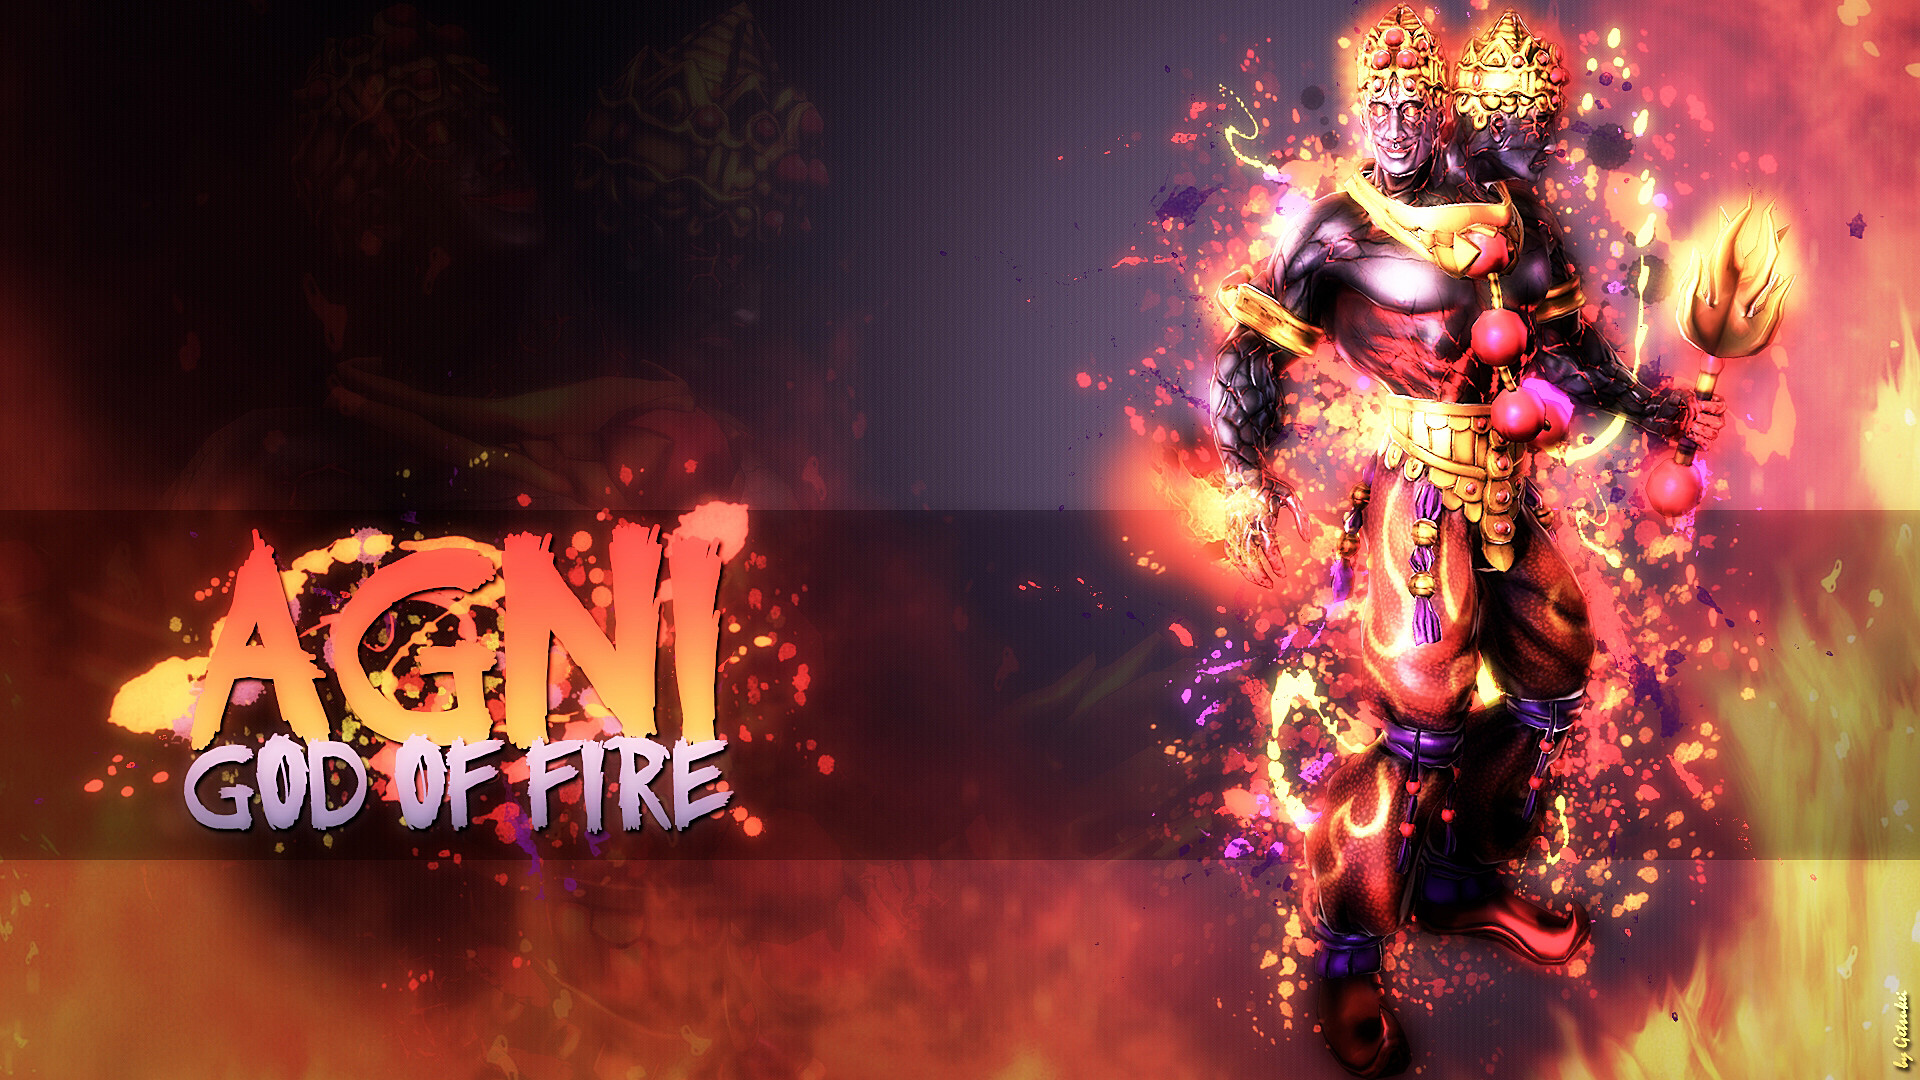 1920x1080 ... God of Fire - Wallpaper HD by Getsukeii